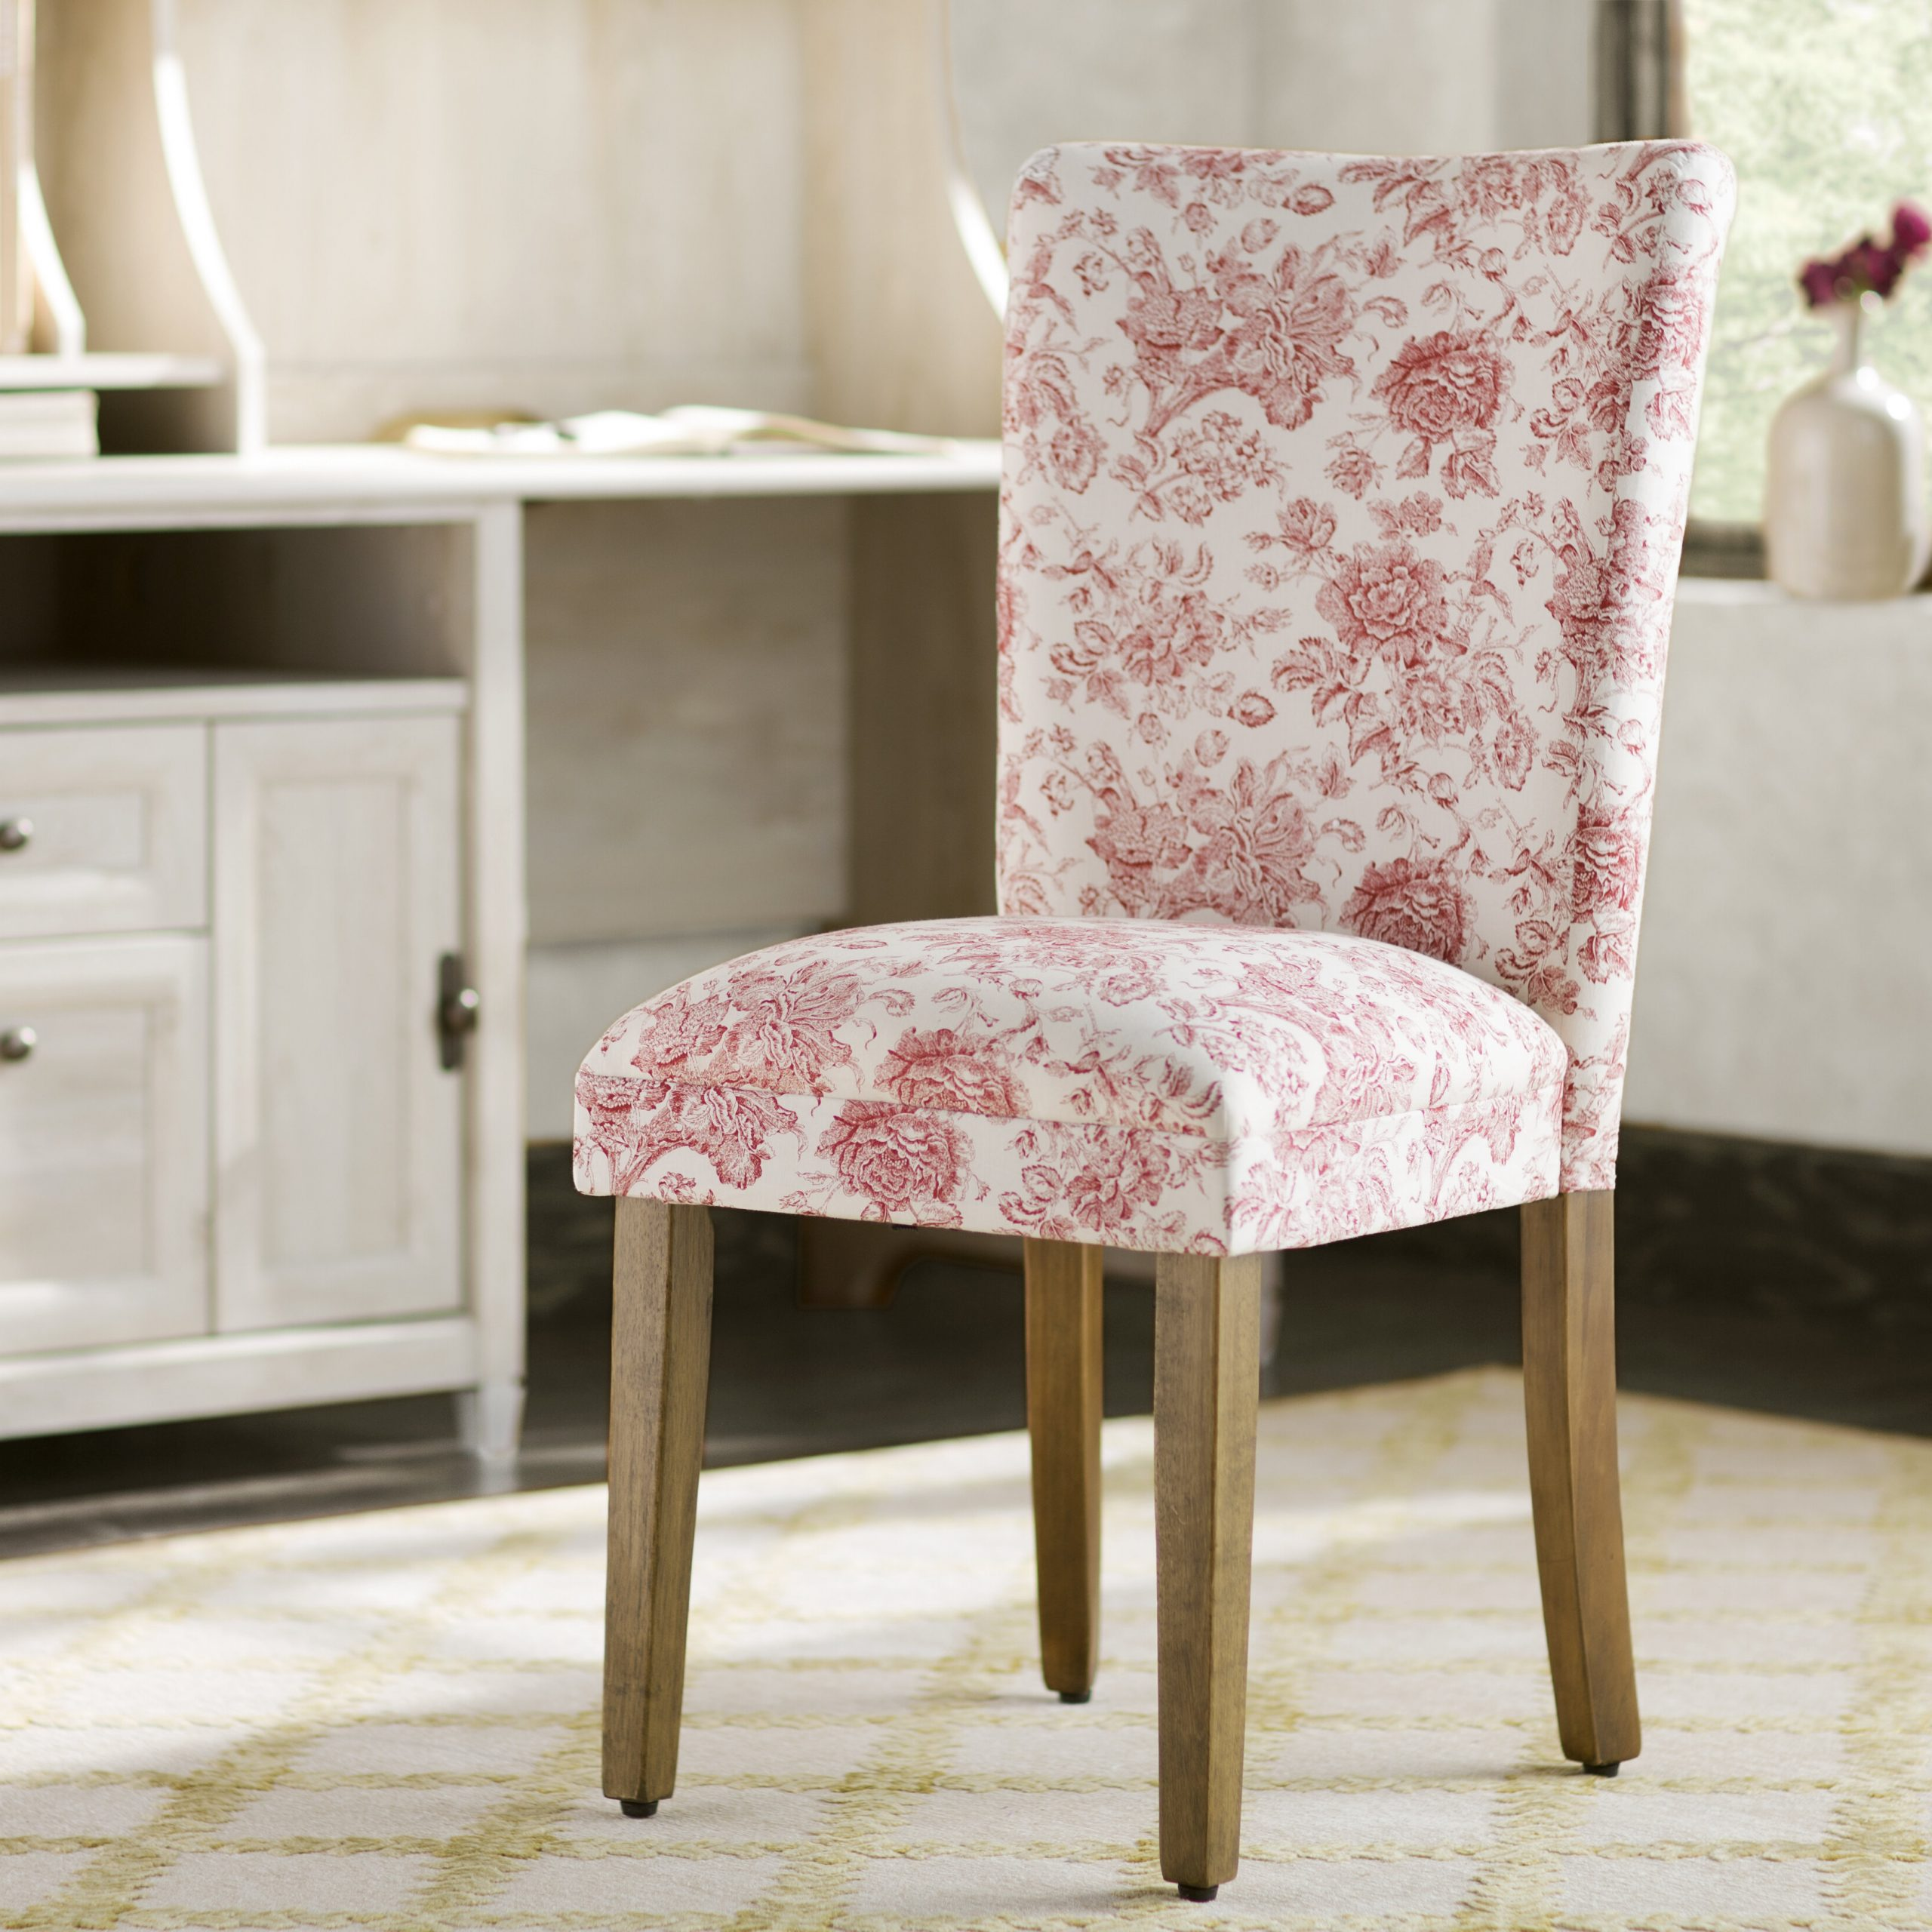 2019 Aime Upholstered Parsons Chairs In Beige Throughout Coastal Parsons Kitchen & Dining Chairs You'll Love In (View 6 of 20)